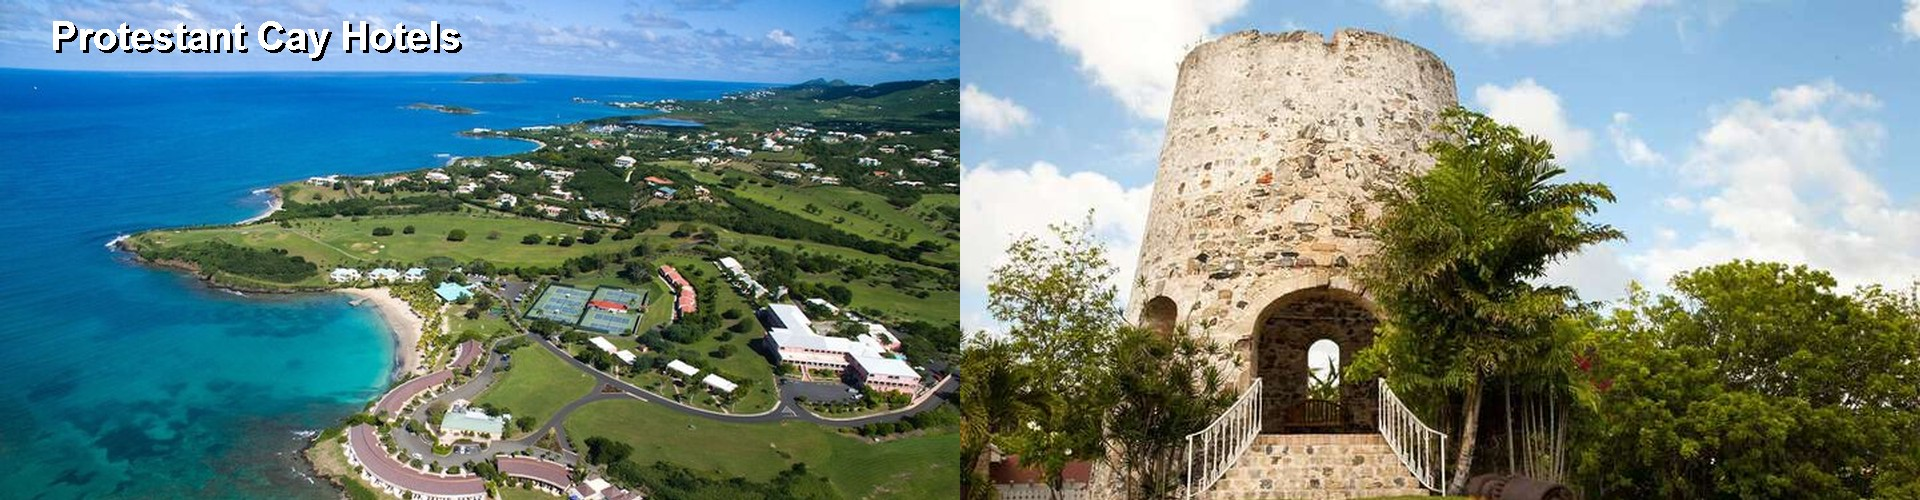 5 Best Hotels near Protestant Cay